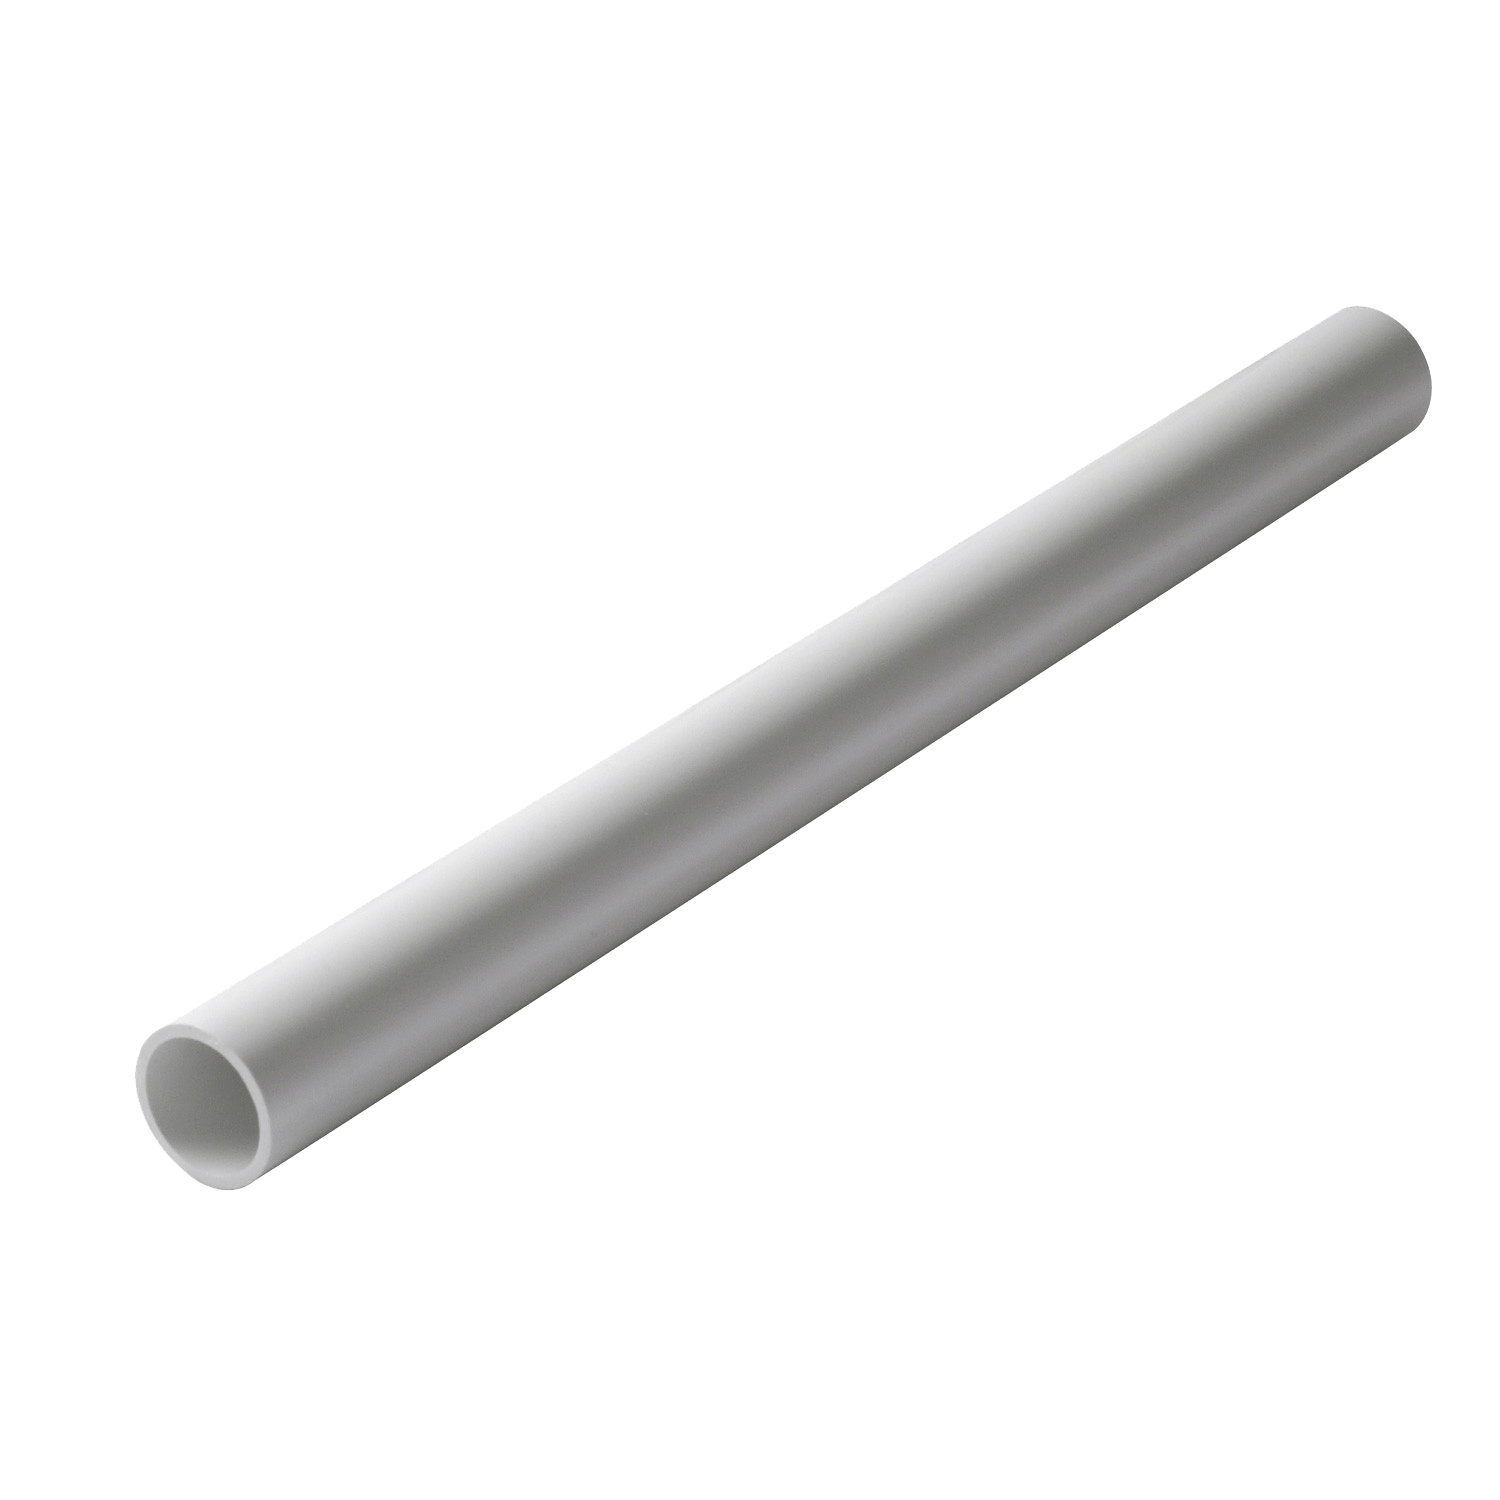 Pvc Tischdecke Transparent Pvc Tischdecke Transparent Clear Pvc Pipe Abstract